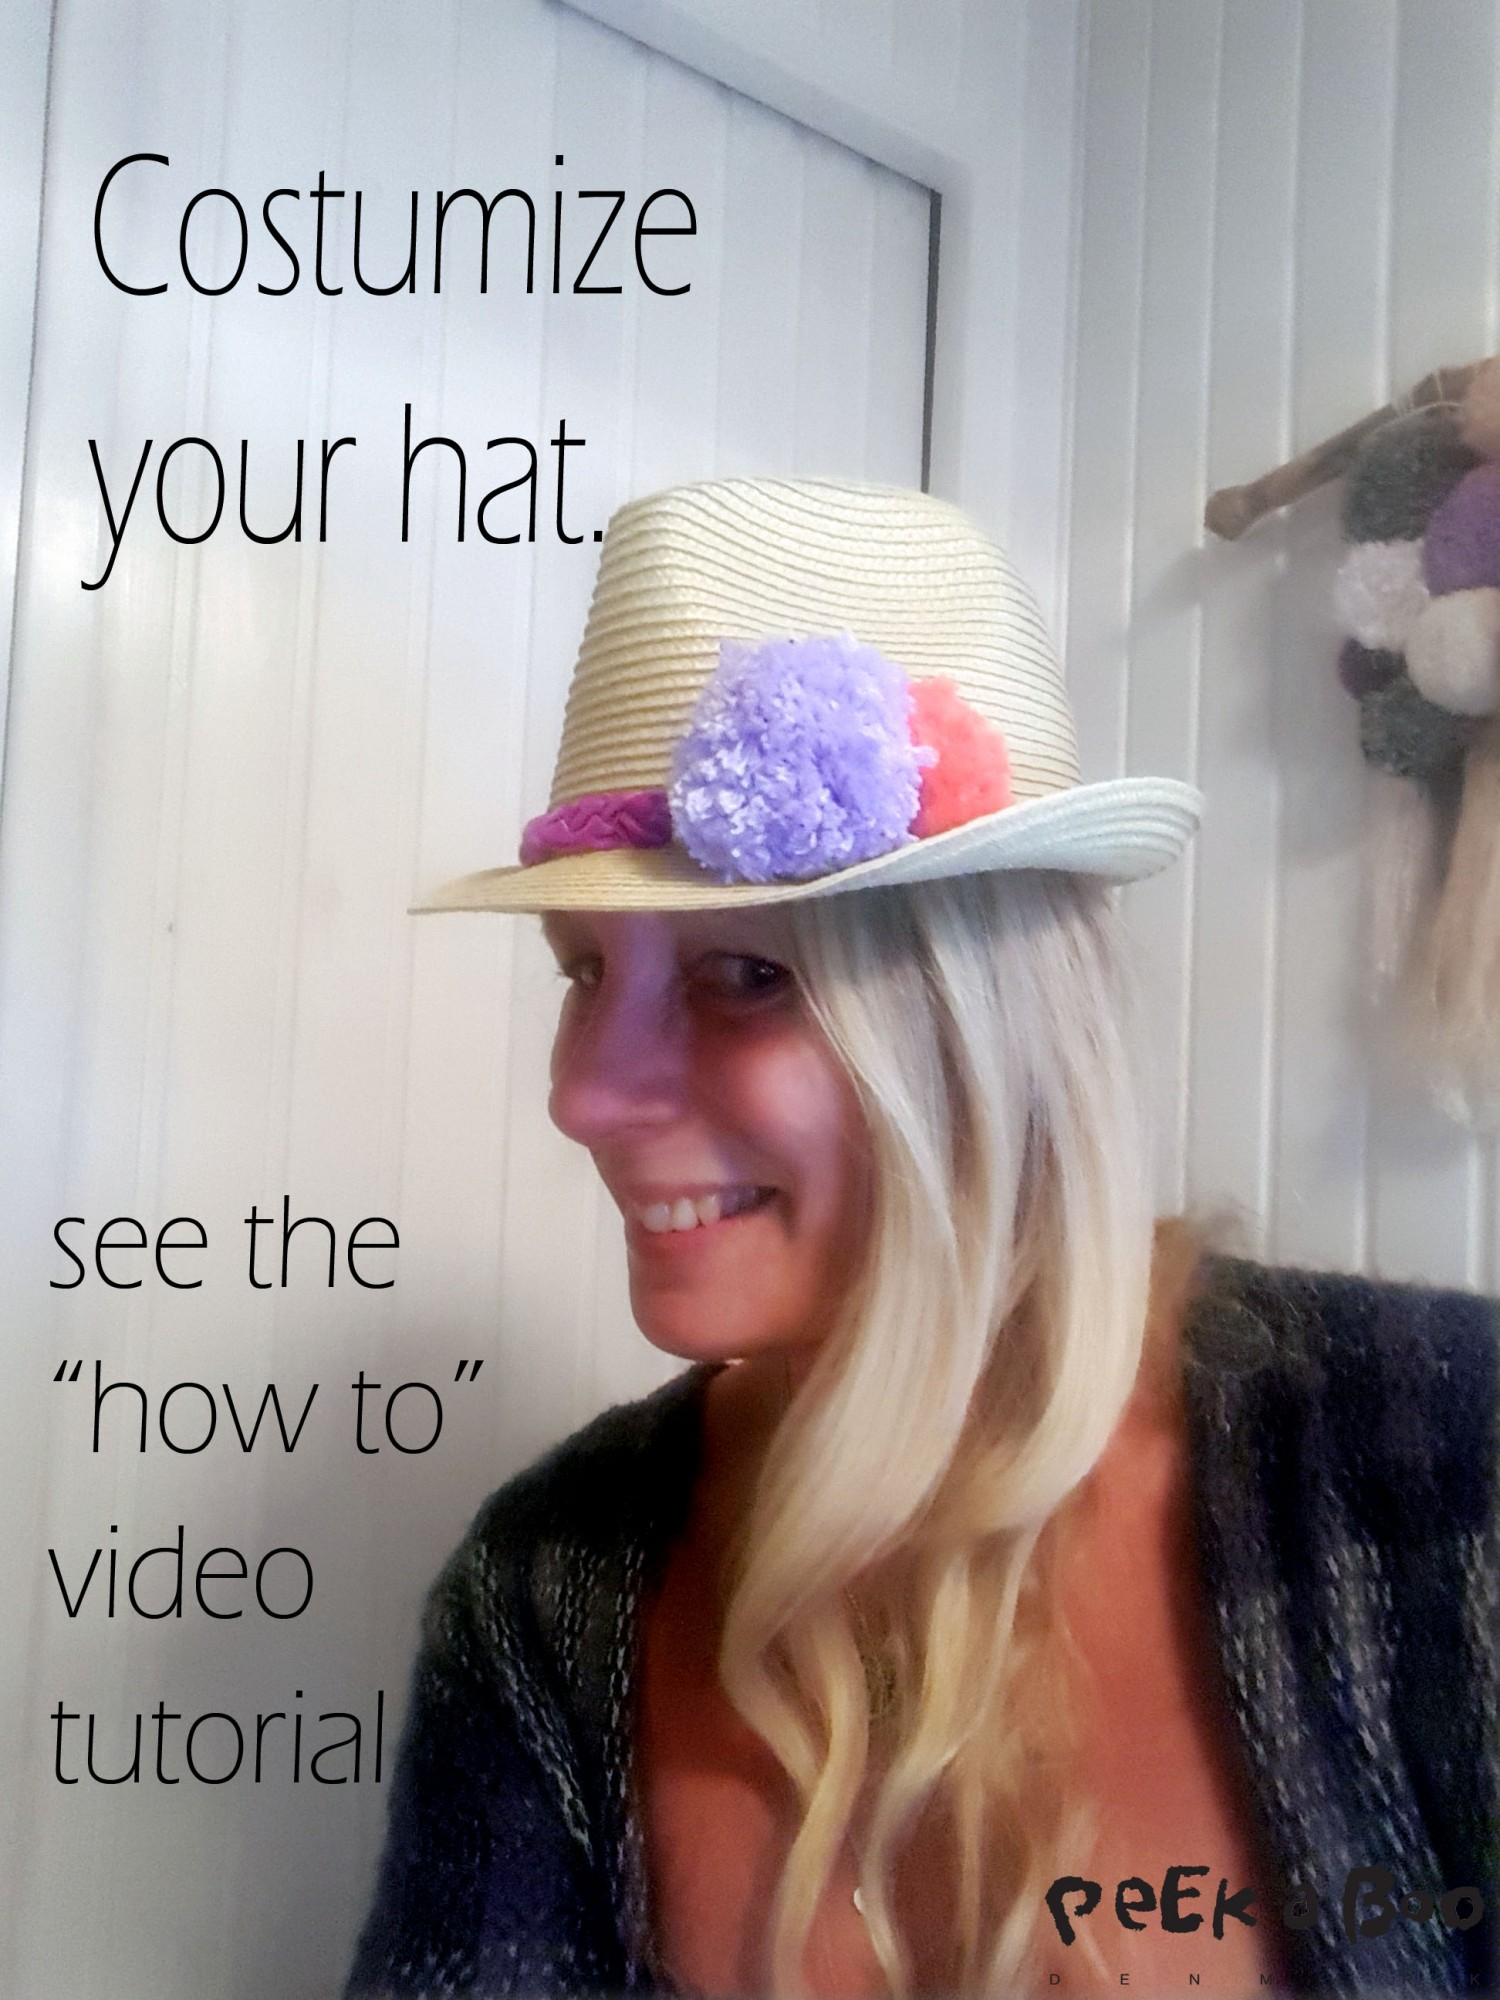 DIY project - Costumize your hat to a new pompon look.